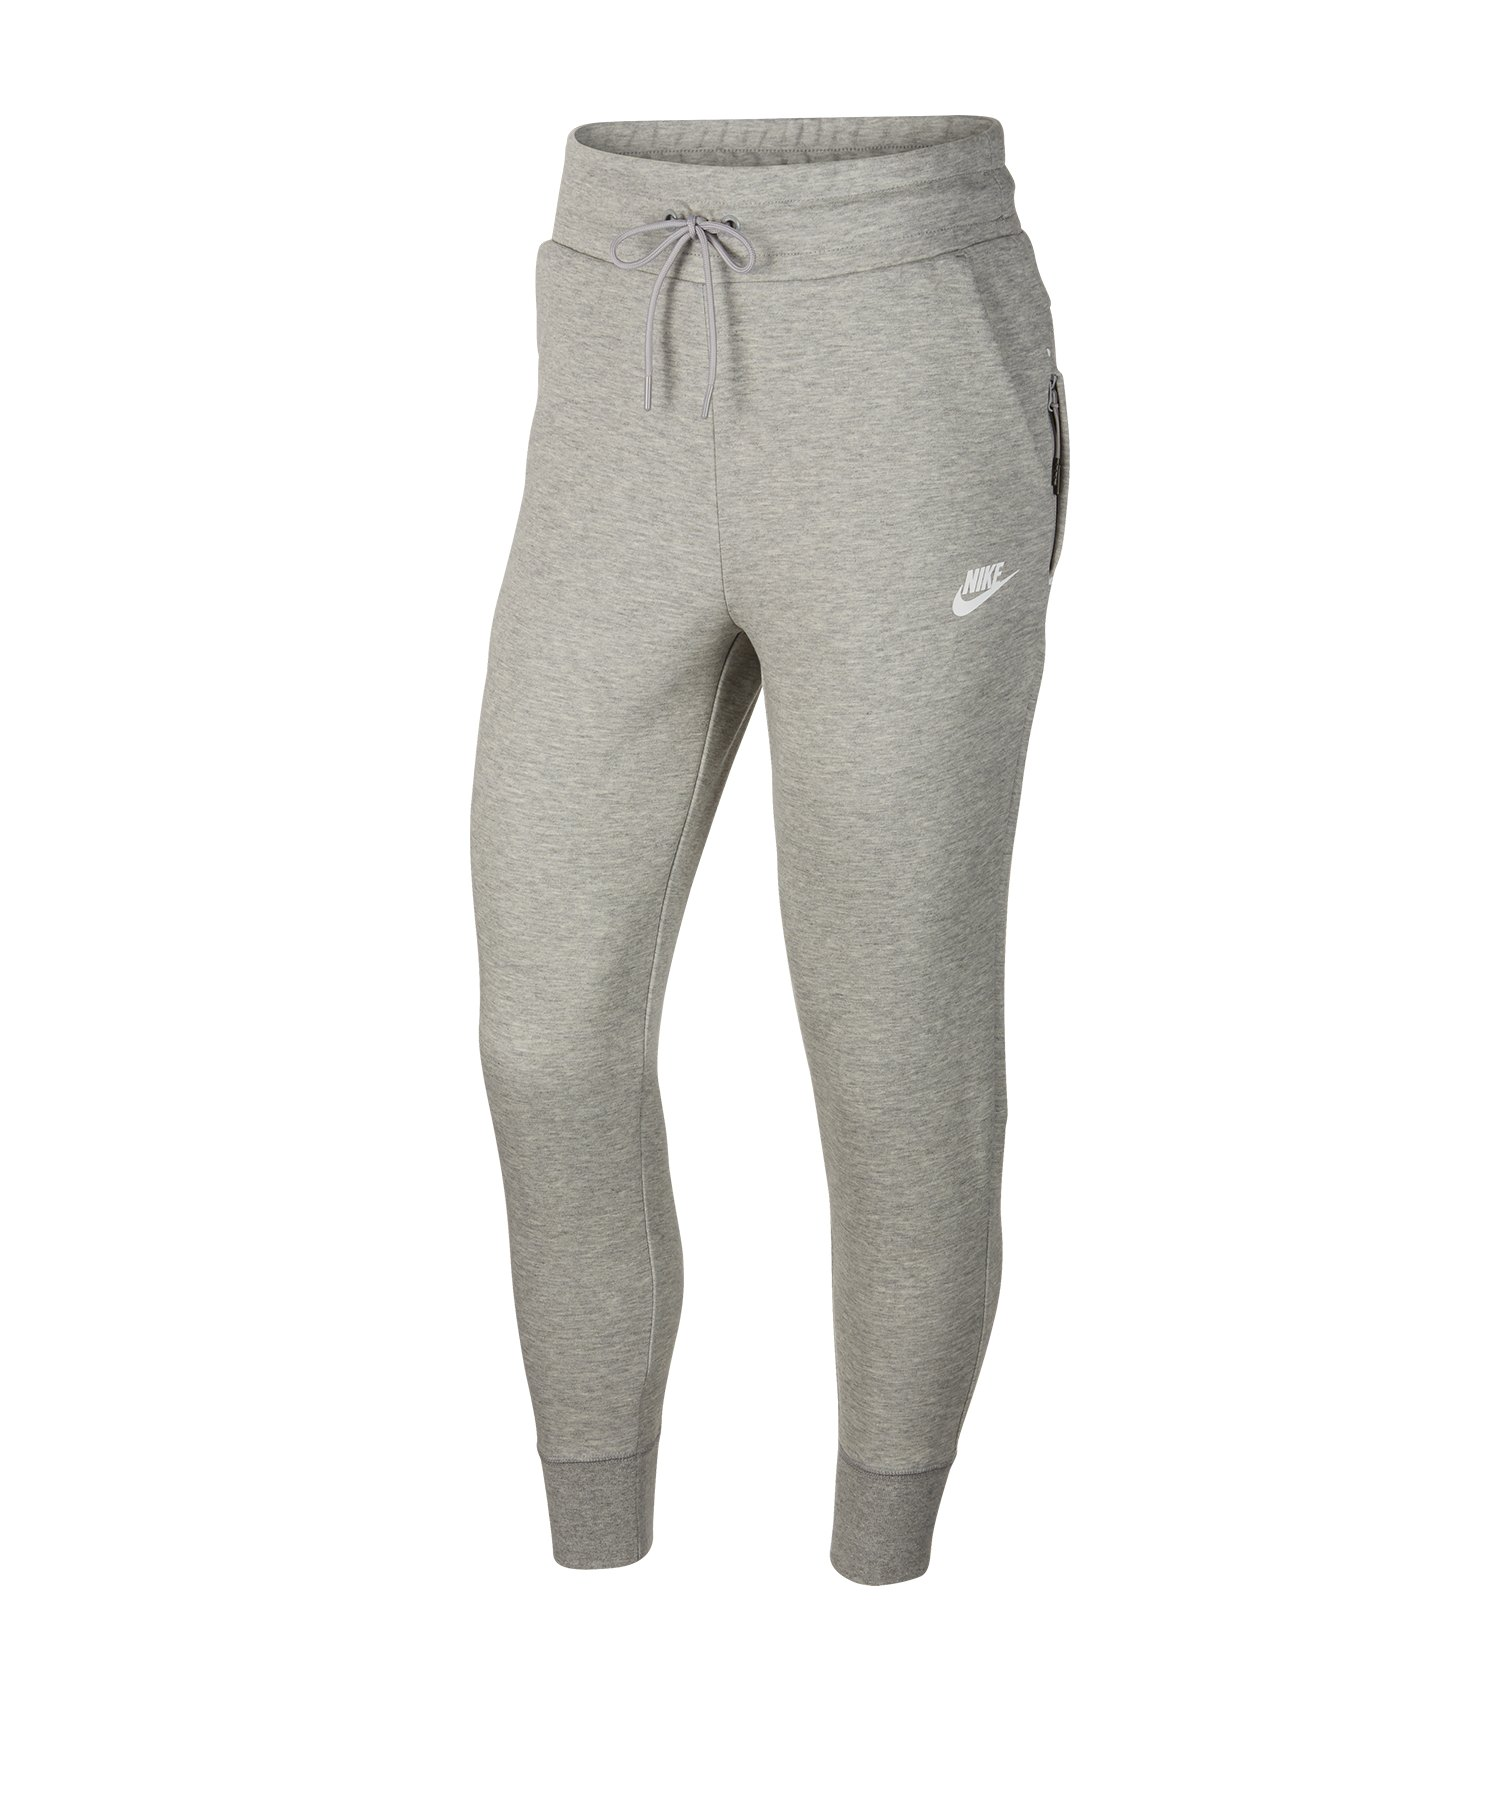 Nike Tech Fleece Jogginghose Damen Grau F063 - grau